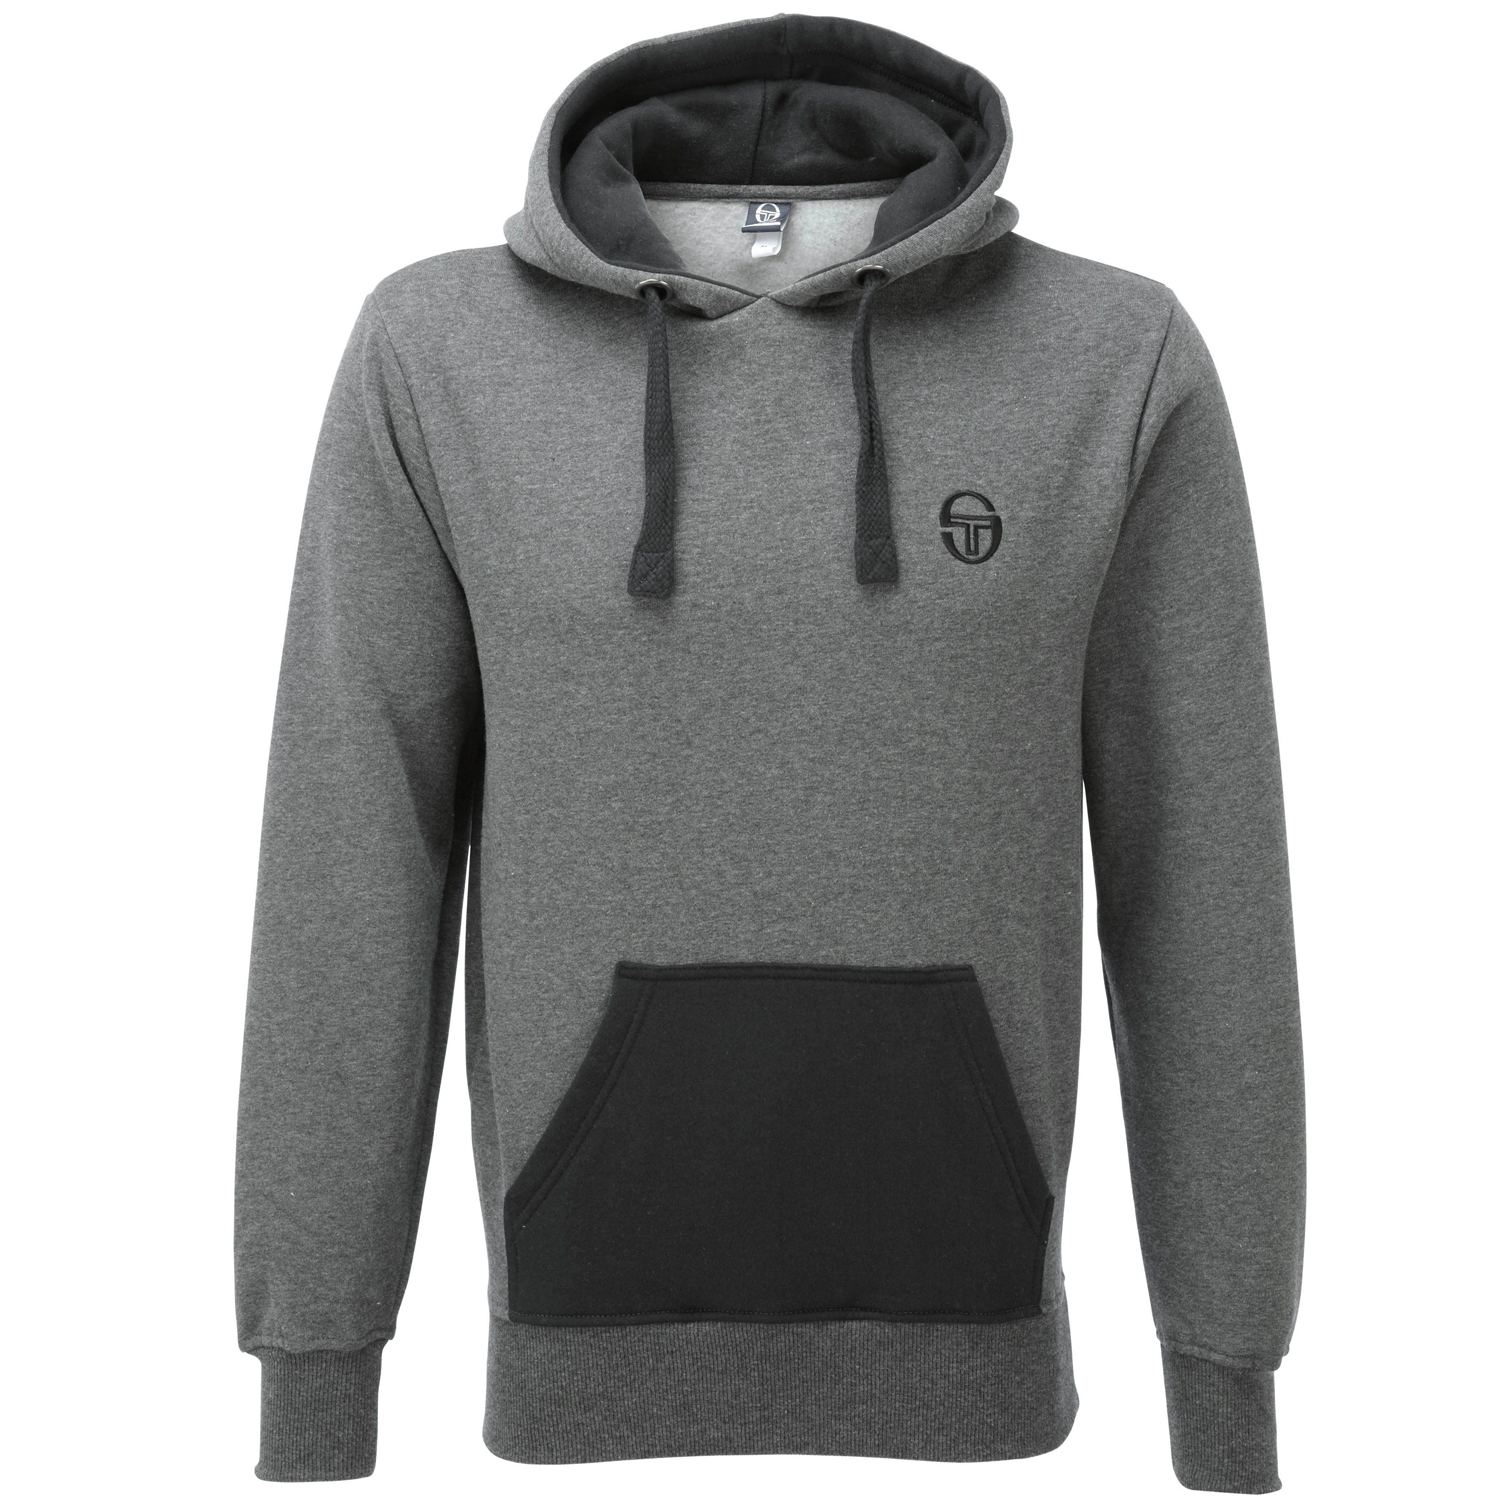 Discover the best Men's Sweatshirts in Best Sellers. Find the top most popular items in Amazon Best Sellers.